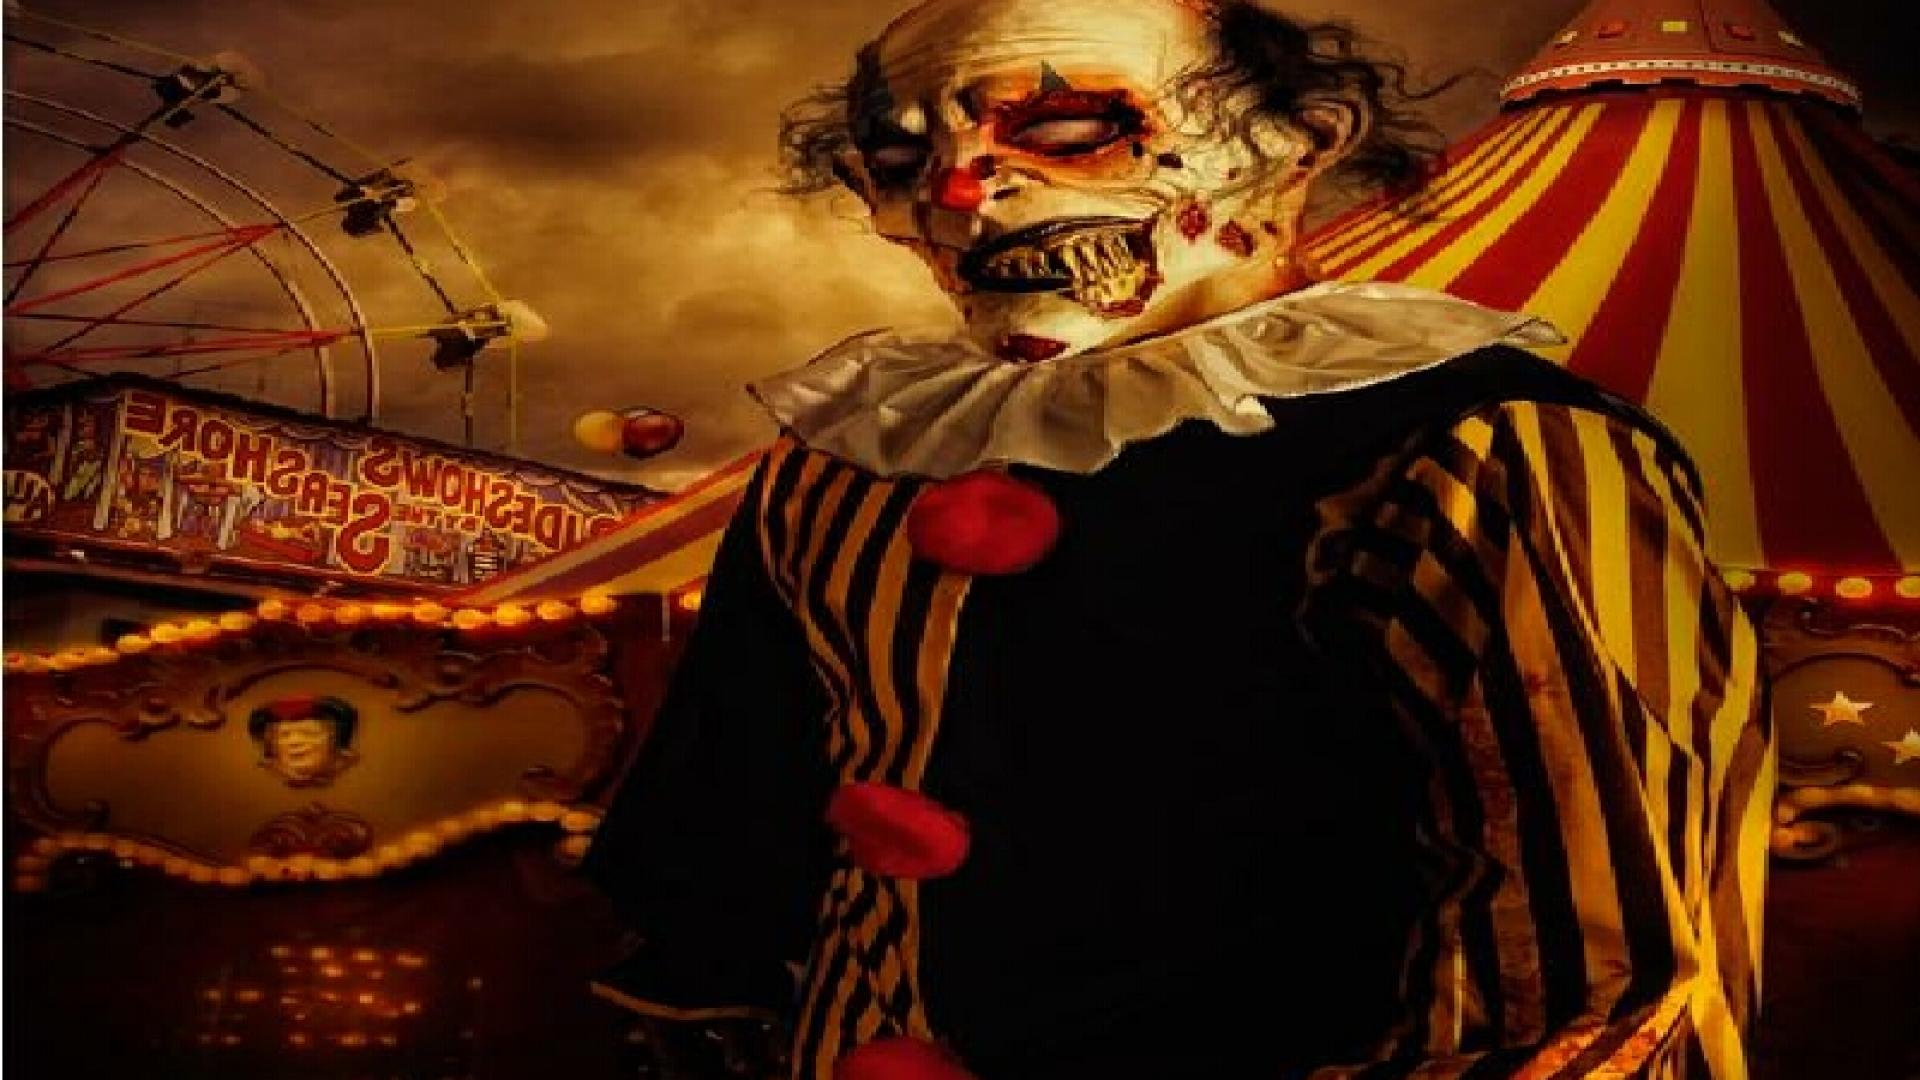 evil clown wallpapers for android